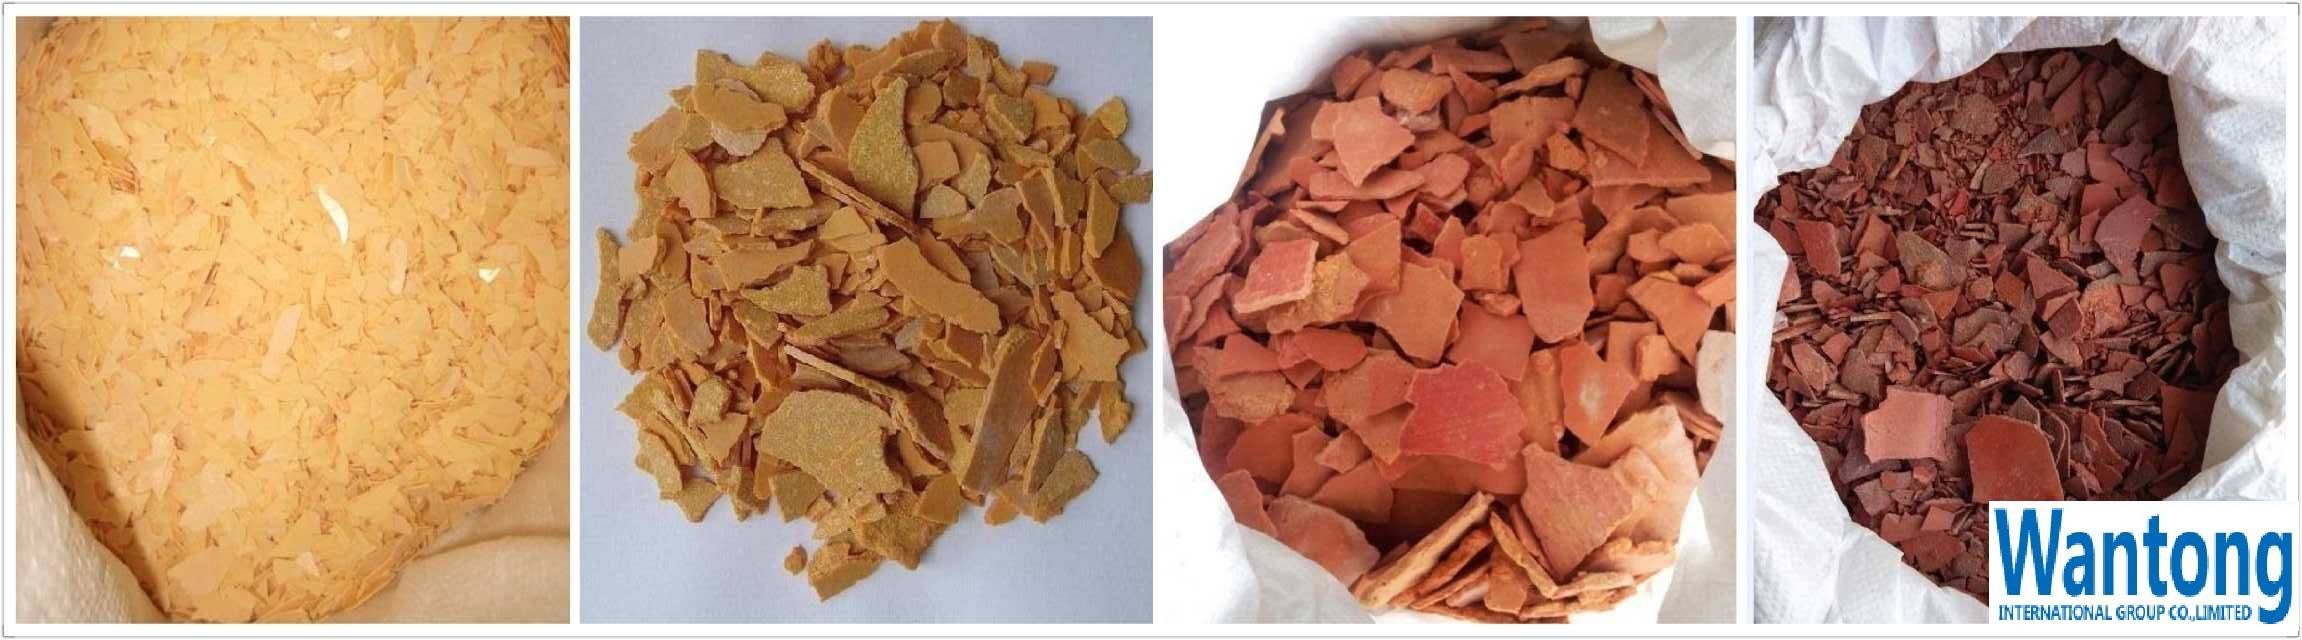 60%min Sodium Sulphide Red Flakes 1500ppm